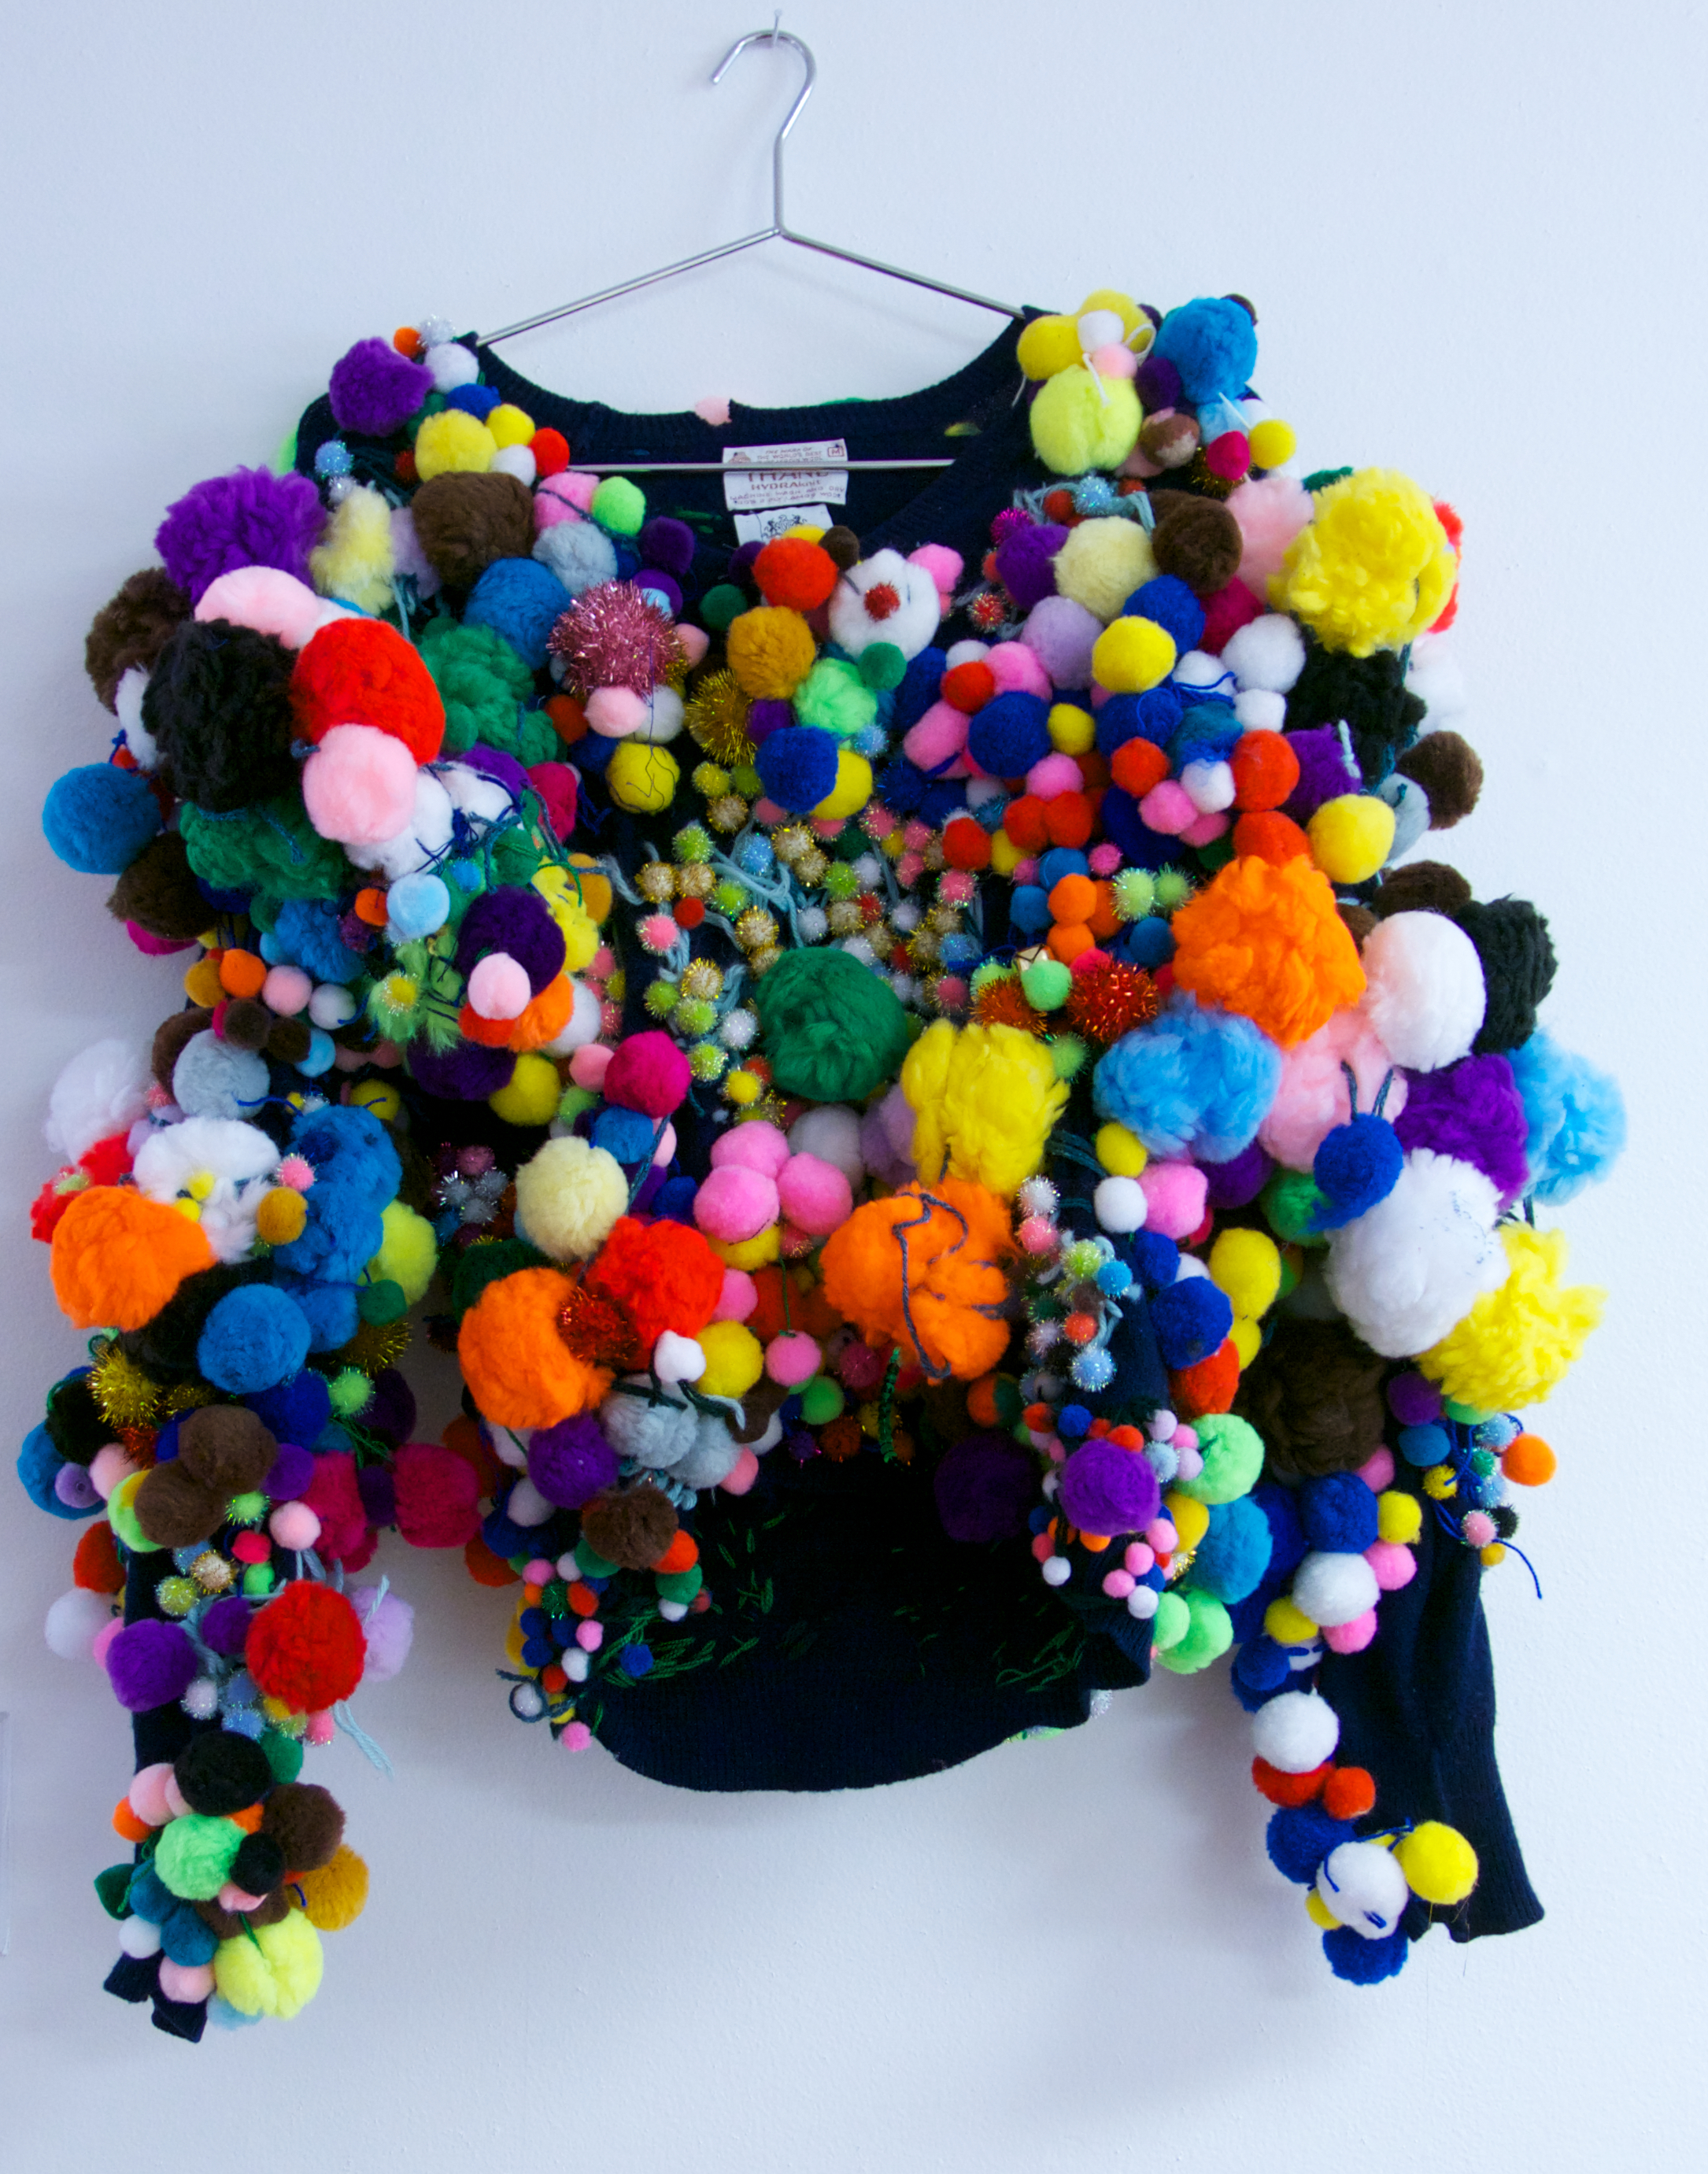 Maureen Clay, Untitled (MC 186), 2017, Pom pom sweater